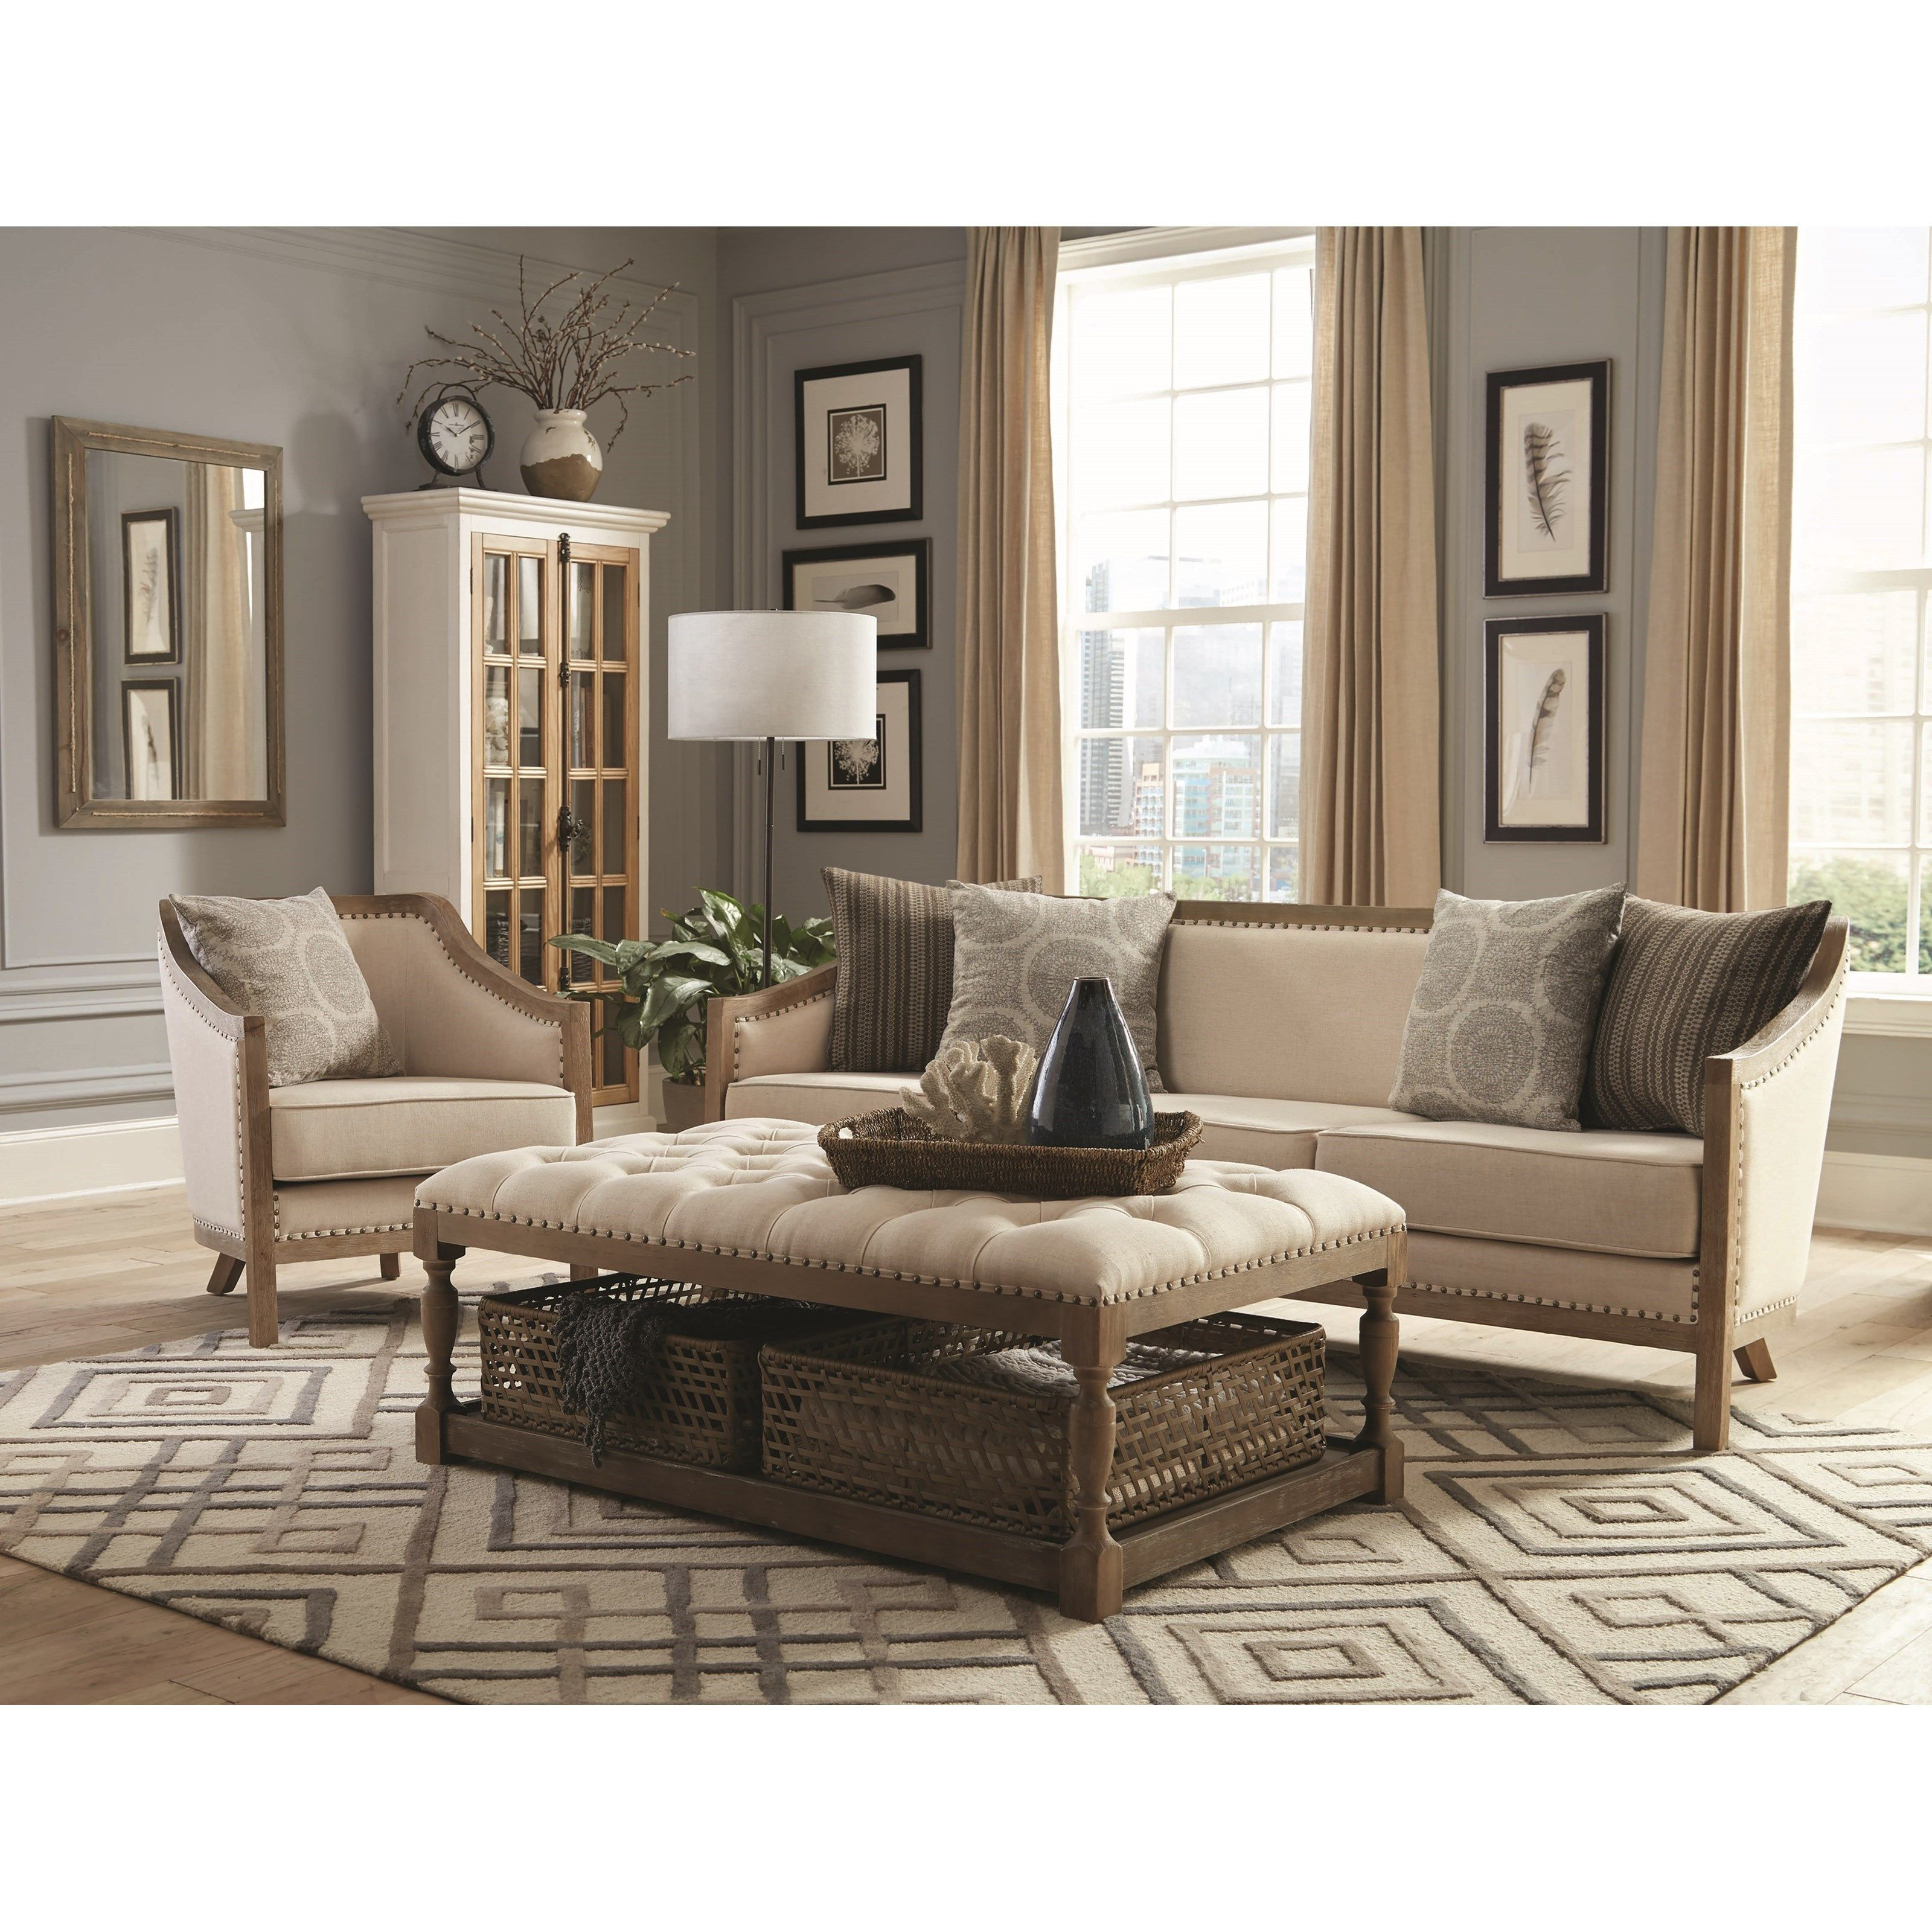 Vintage Inspired Sofa With Nailhead